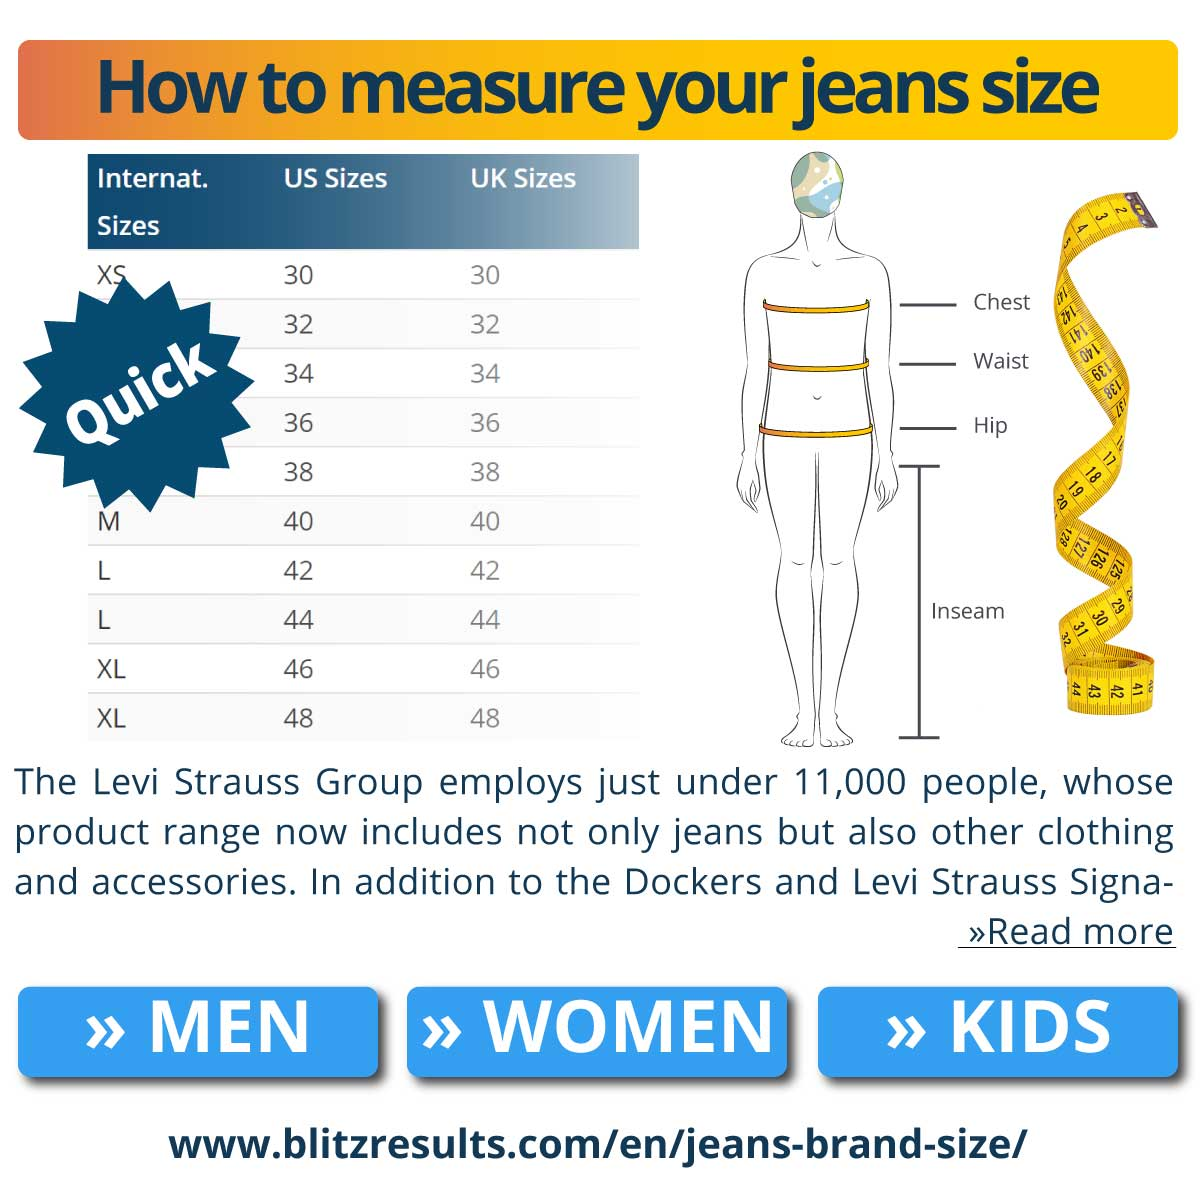 How to measure your jeans size